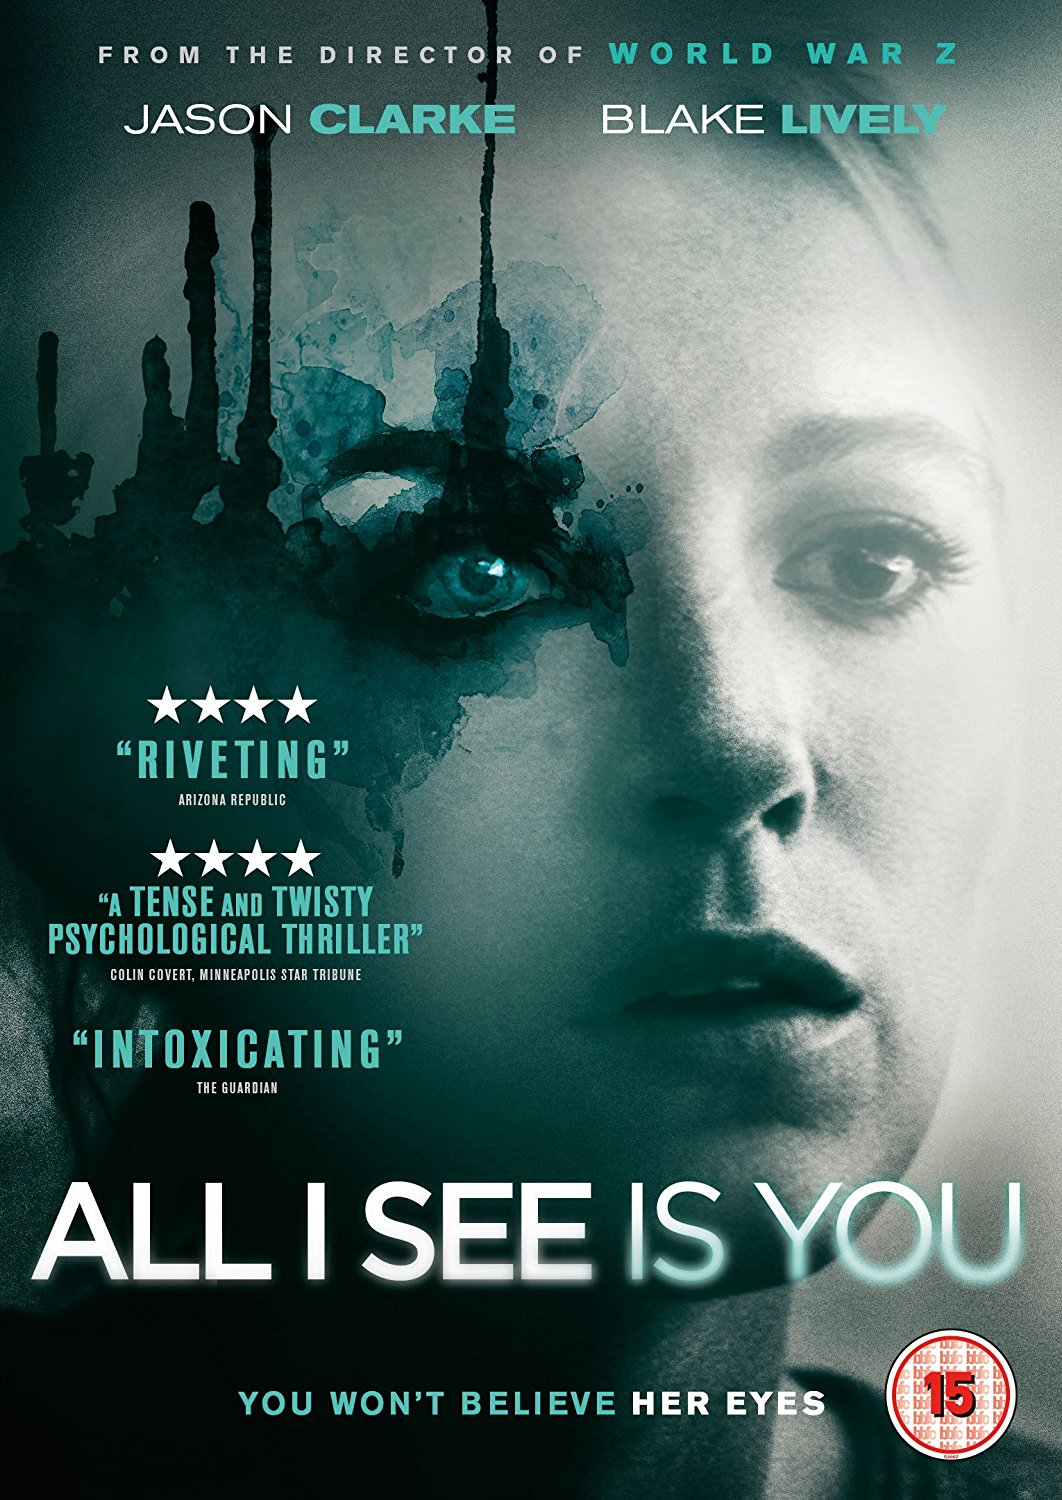 All I See Is You stars Blake Lively (The Shallows, The Age of Adaline, Gossip Girl) and Jason Clarke (Everest, Zero Dark Thirty) in a somewhat disturbing and obsessive love story.